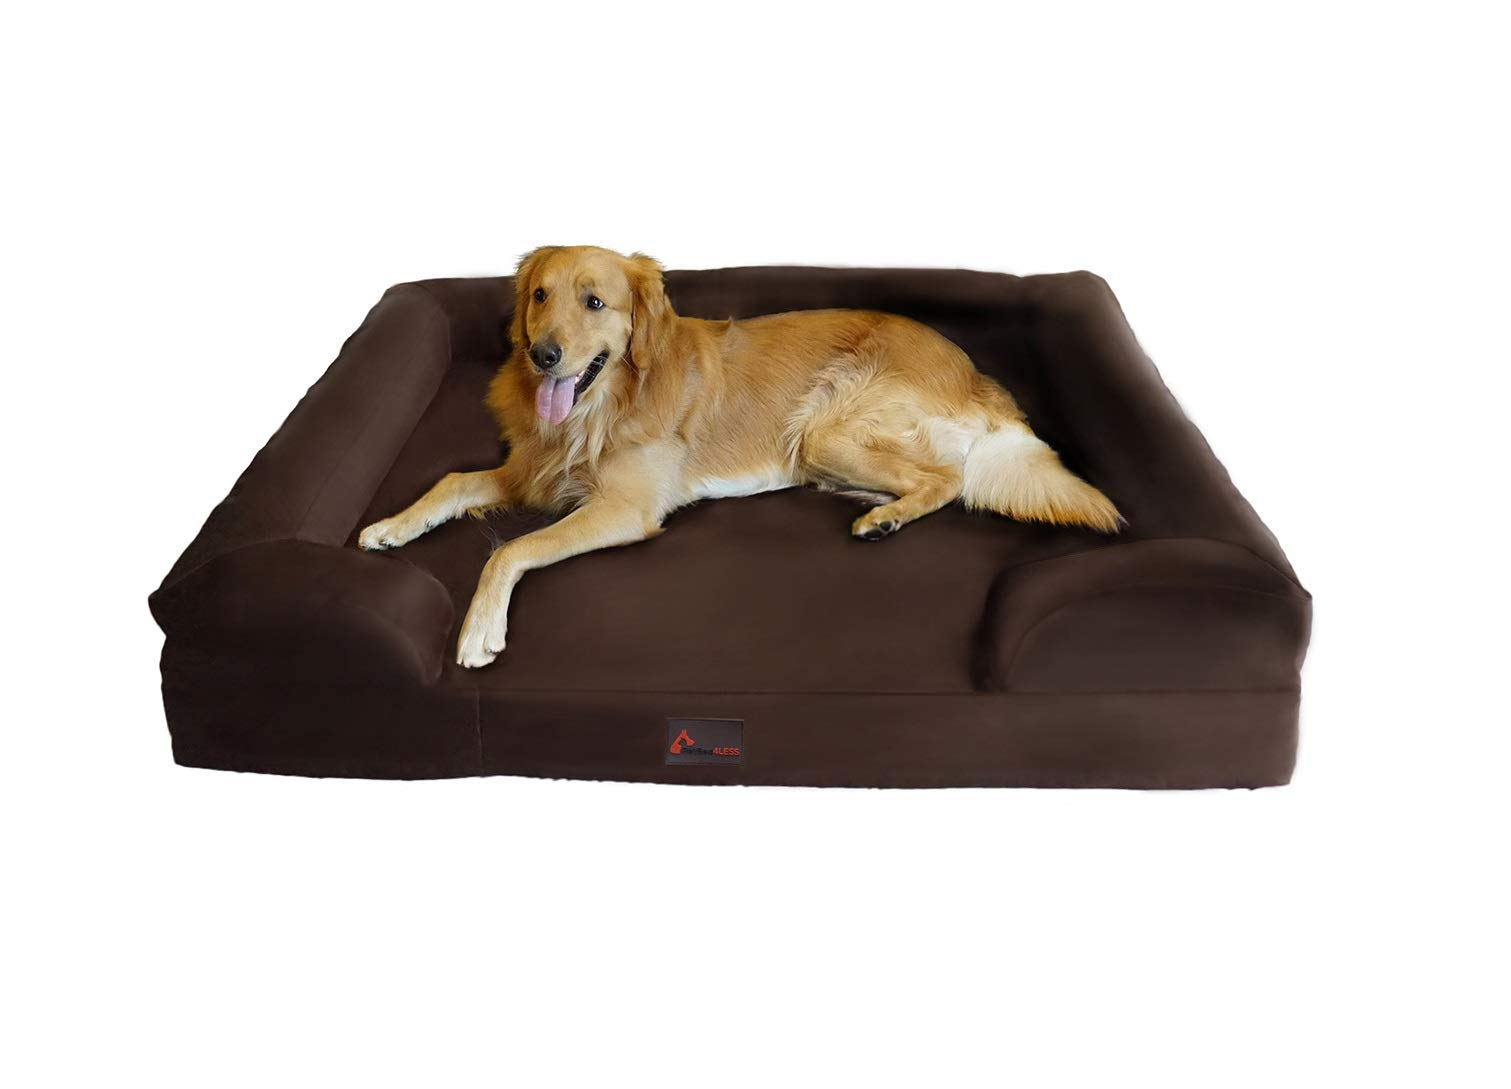 PetBed4Less Deluxe Dog Bed Sofa & Lounge w/Premium Orthopedic Memory Foam and Chew Resistant Zipper Cover + Waterproof Liner [Replacement Zipper Covers Available] by PetBed4Less